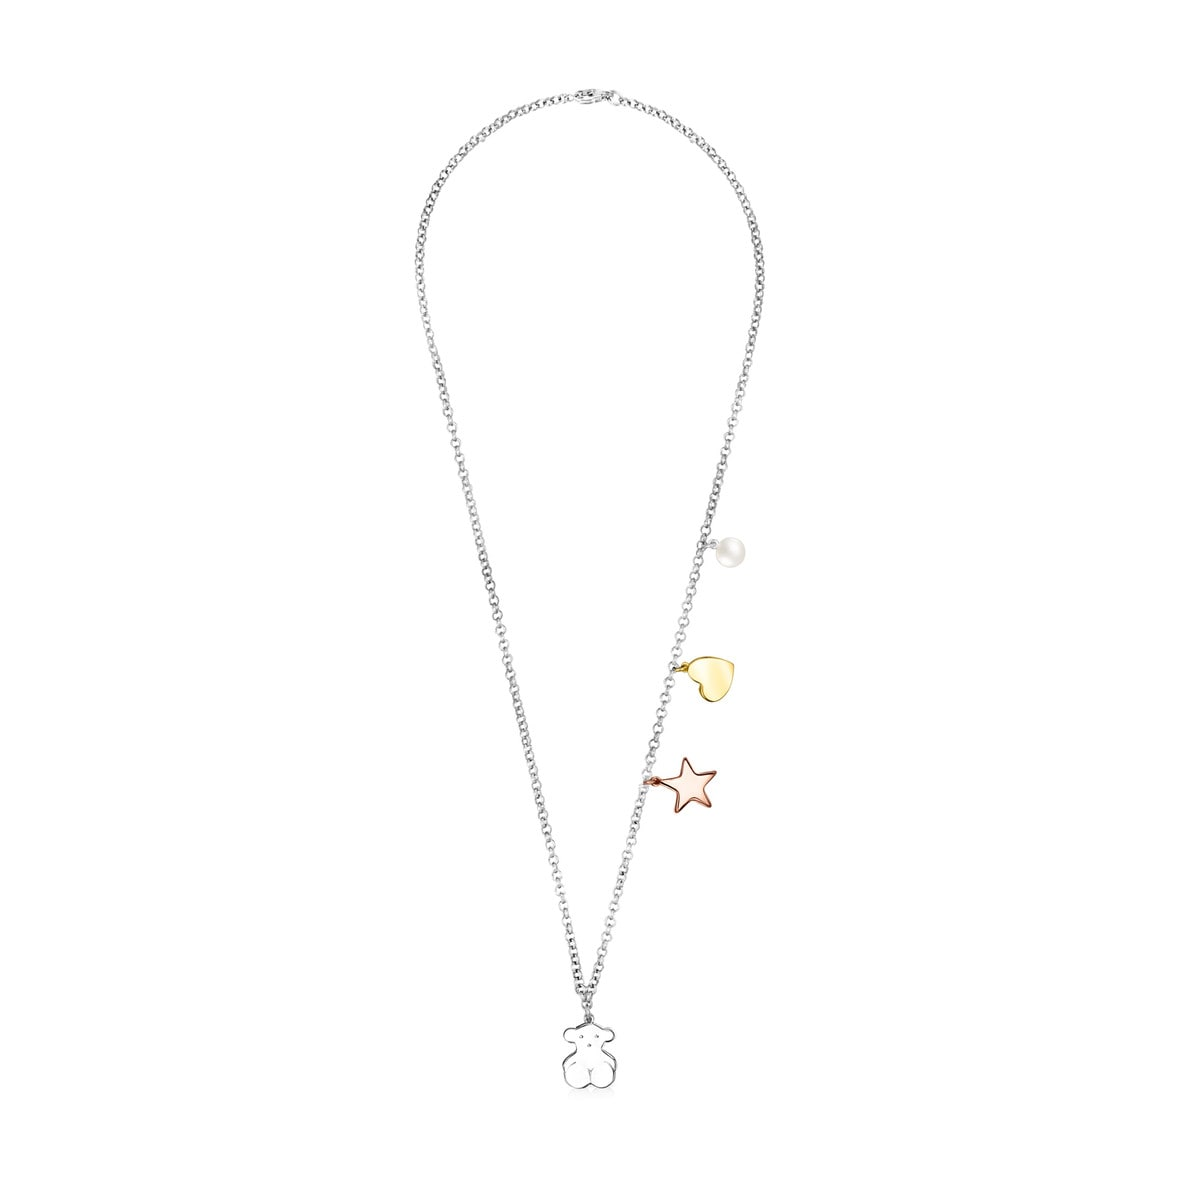 Silver Sweet Dolls Necklace with Gold Vermeil, rose Gold Vermeil and Pearl